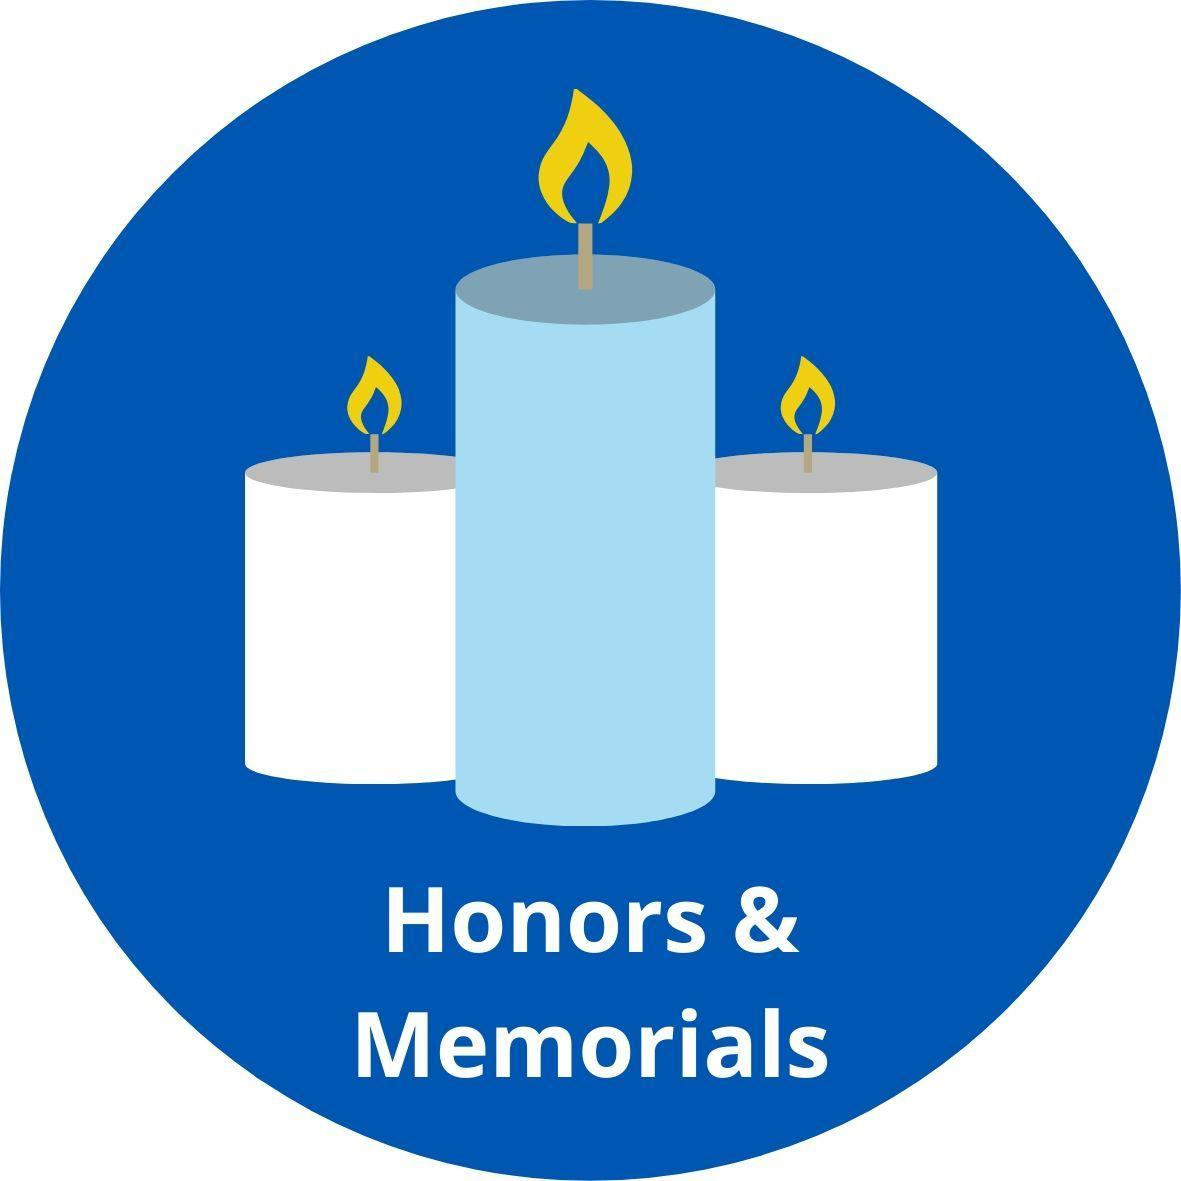 Honors and Memorials